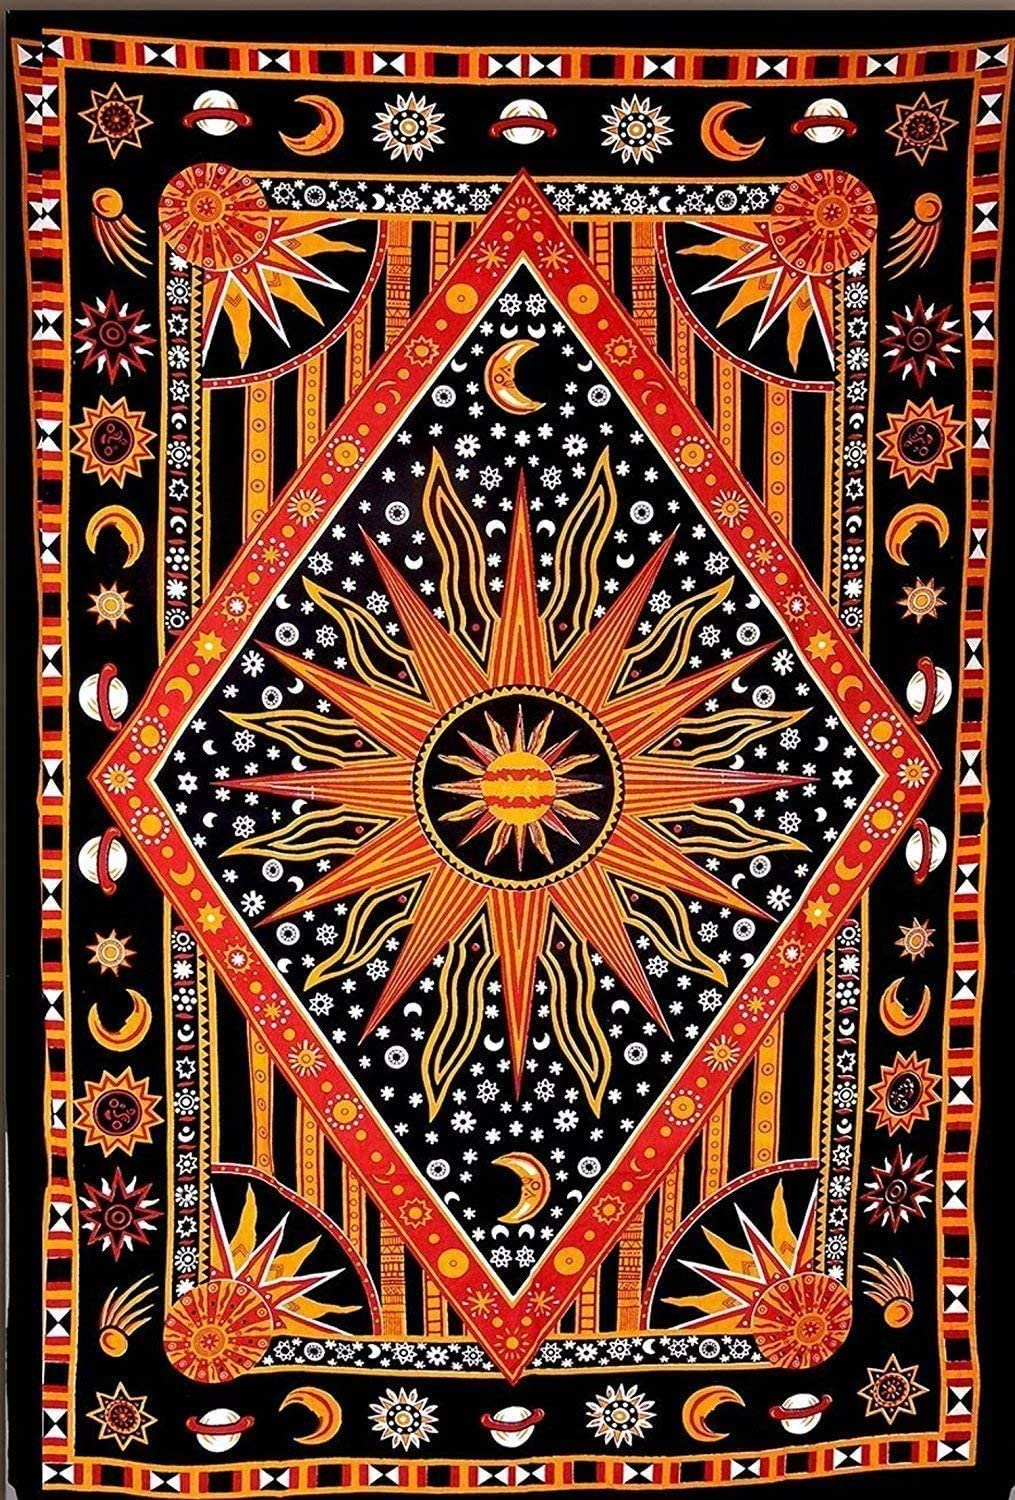 THE ART BOX Purple Hippie Mandala Sun Moon Burning Sun Psychedelic Trippy Tapestry for Bedroom Celestial Busning Sun Tapestry Bohemian Wall Hanging Planet Tapestry